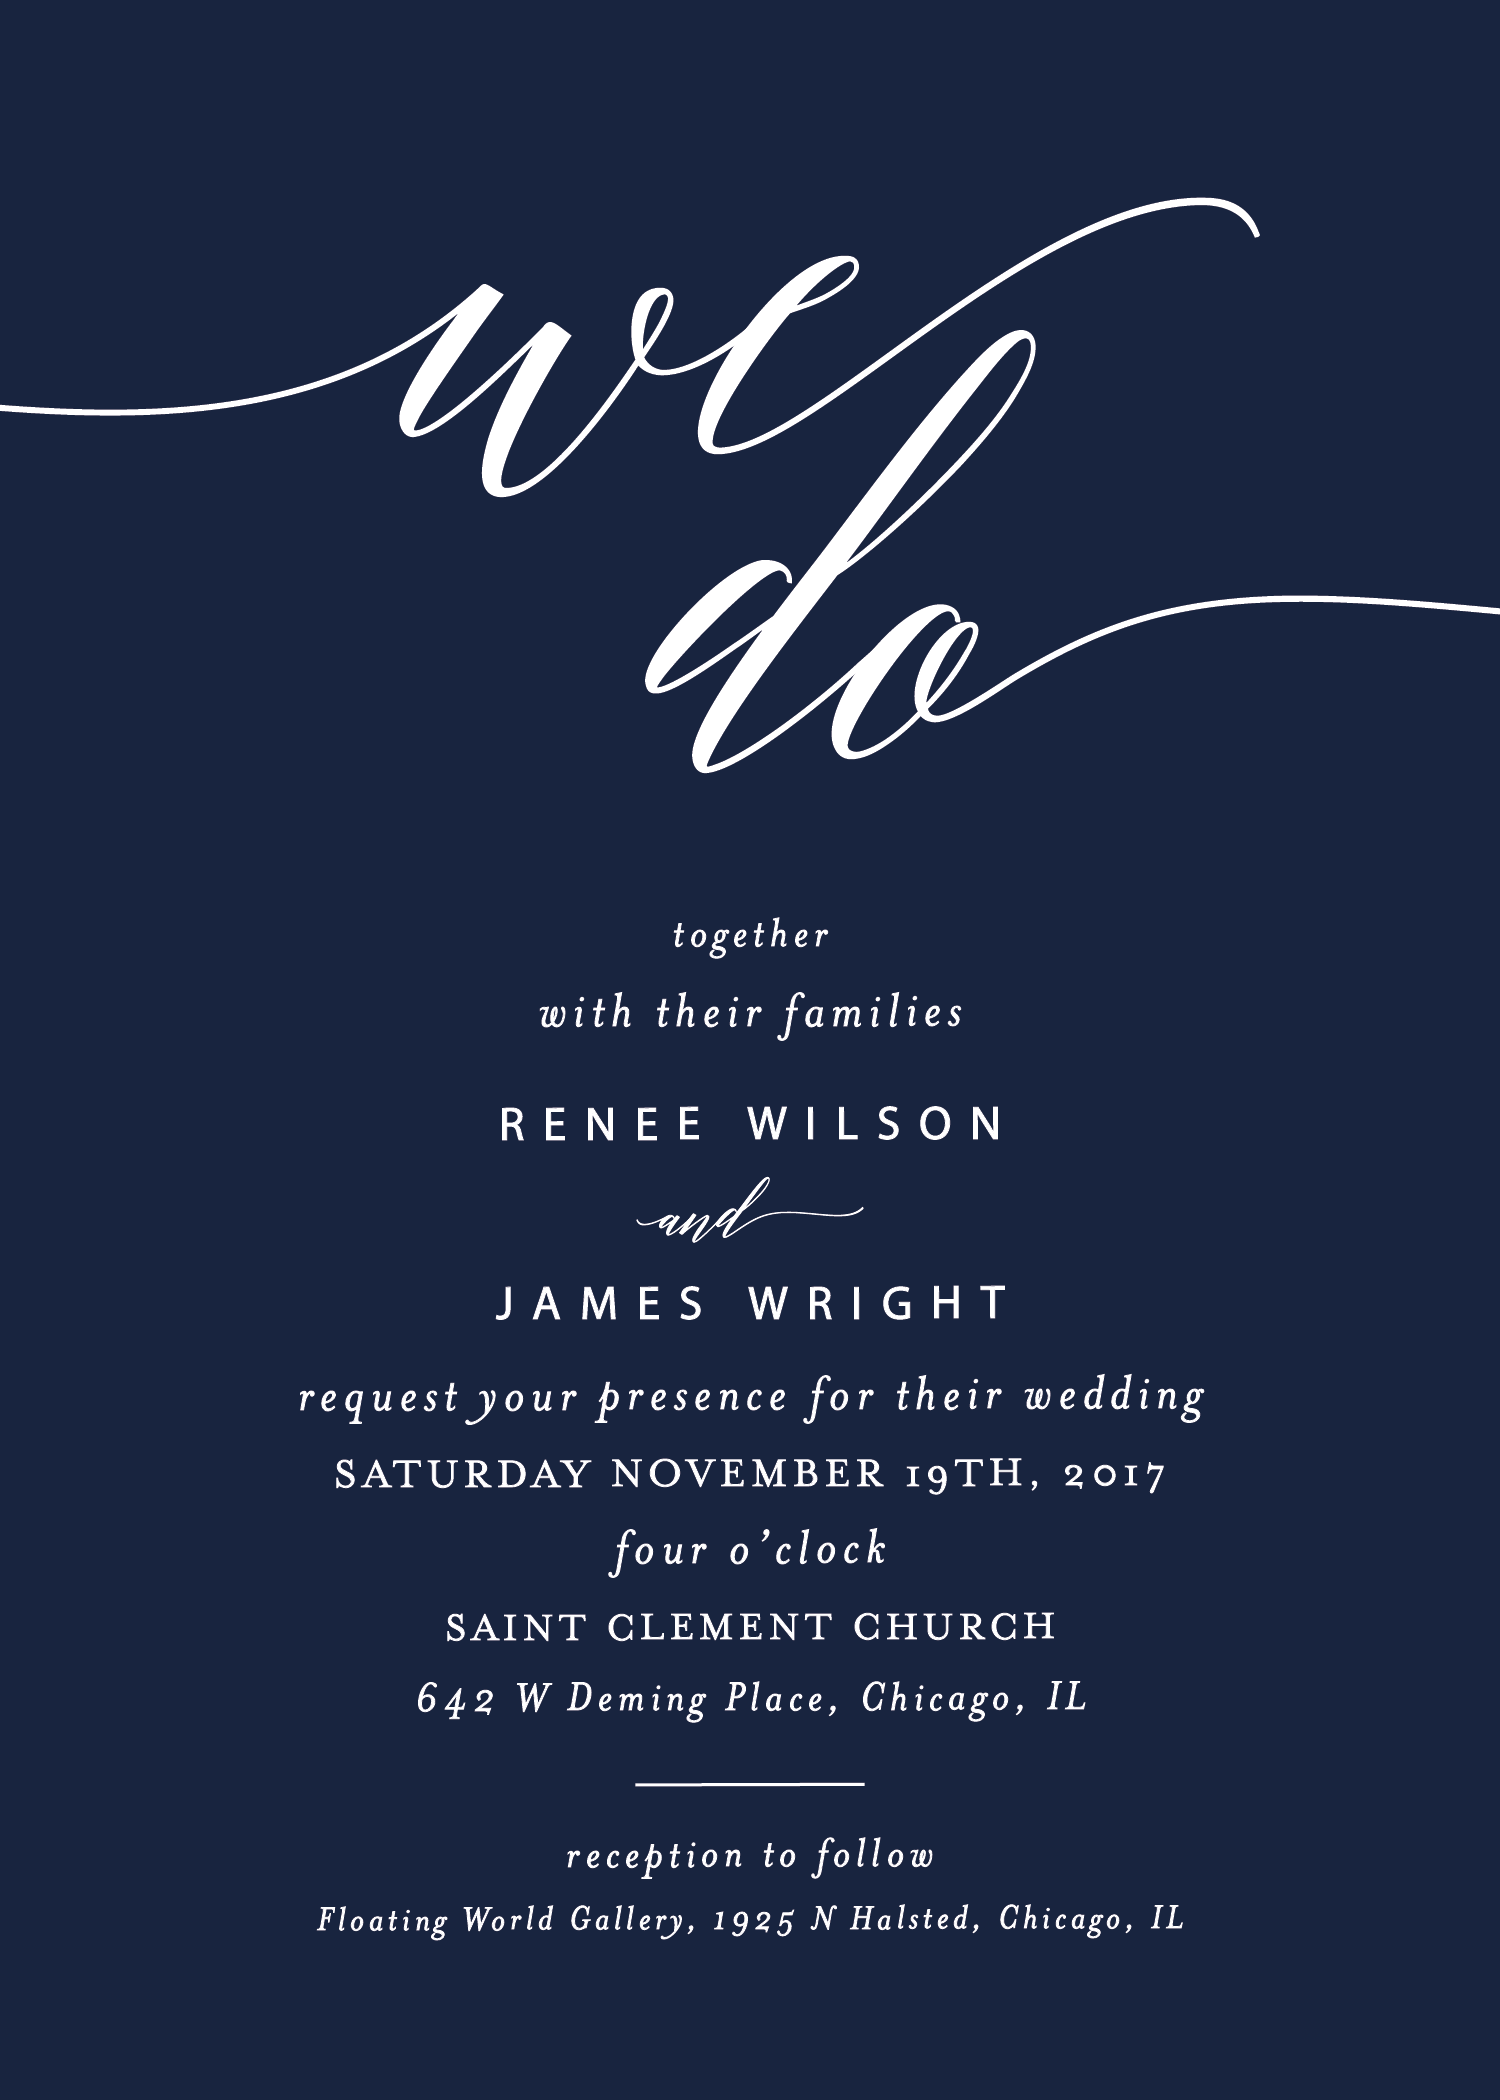 Navy and white wedding invitation - a classic navy color with white ...